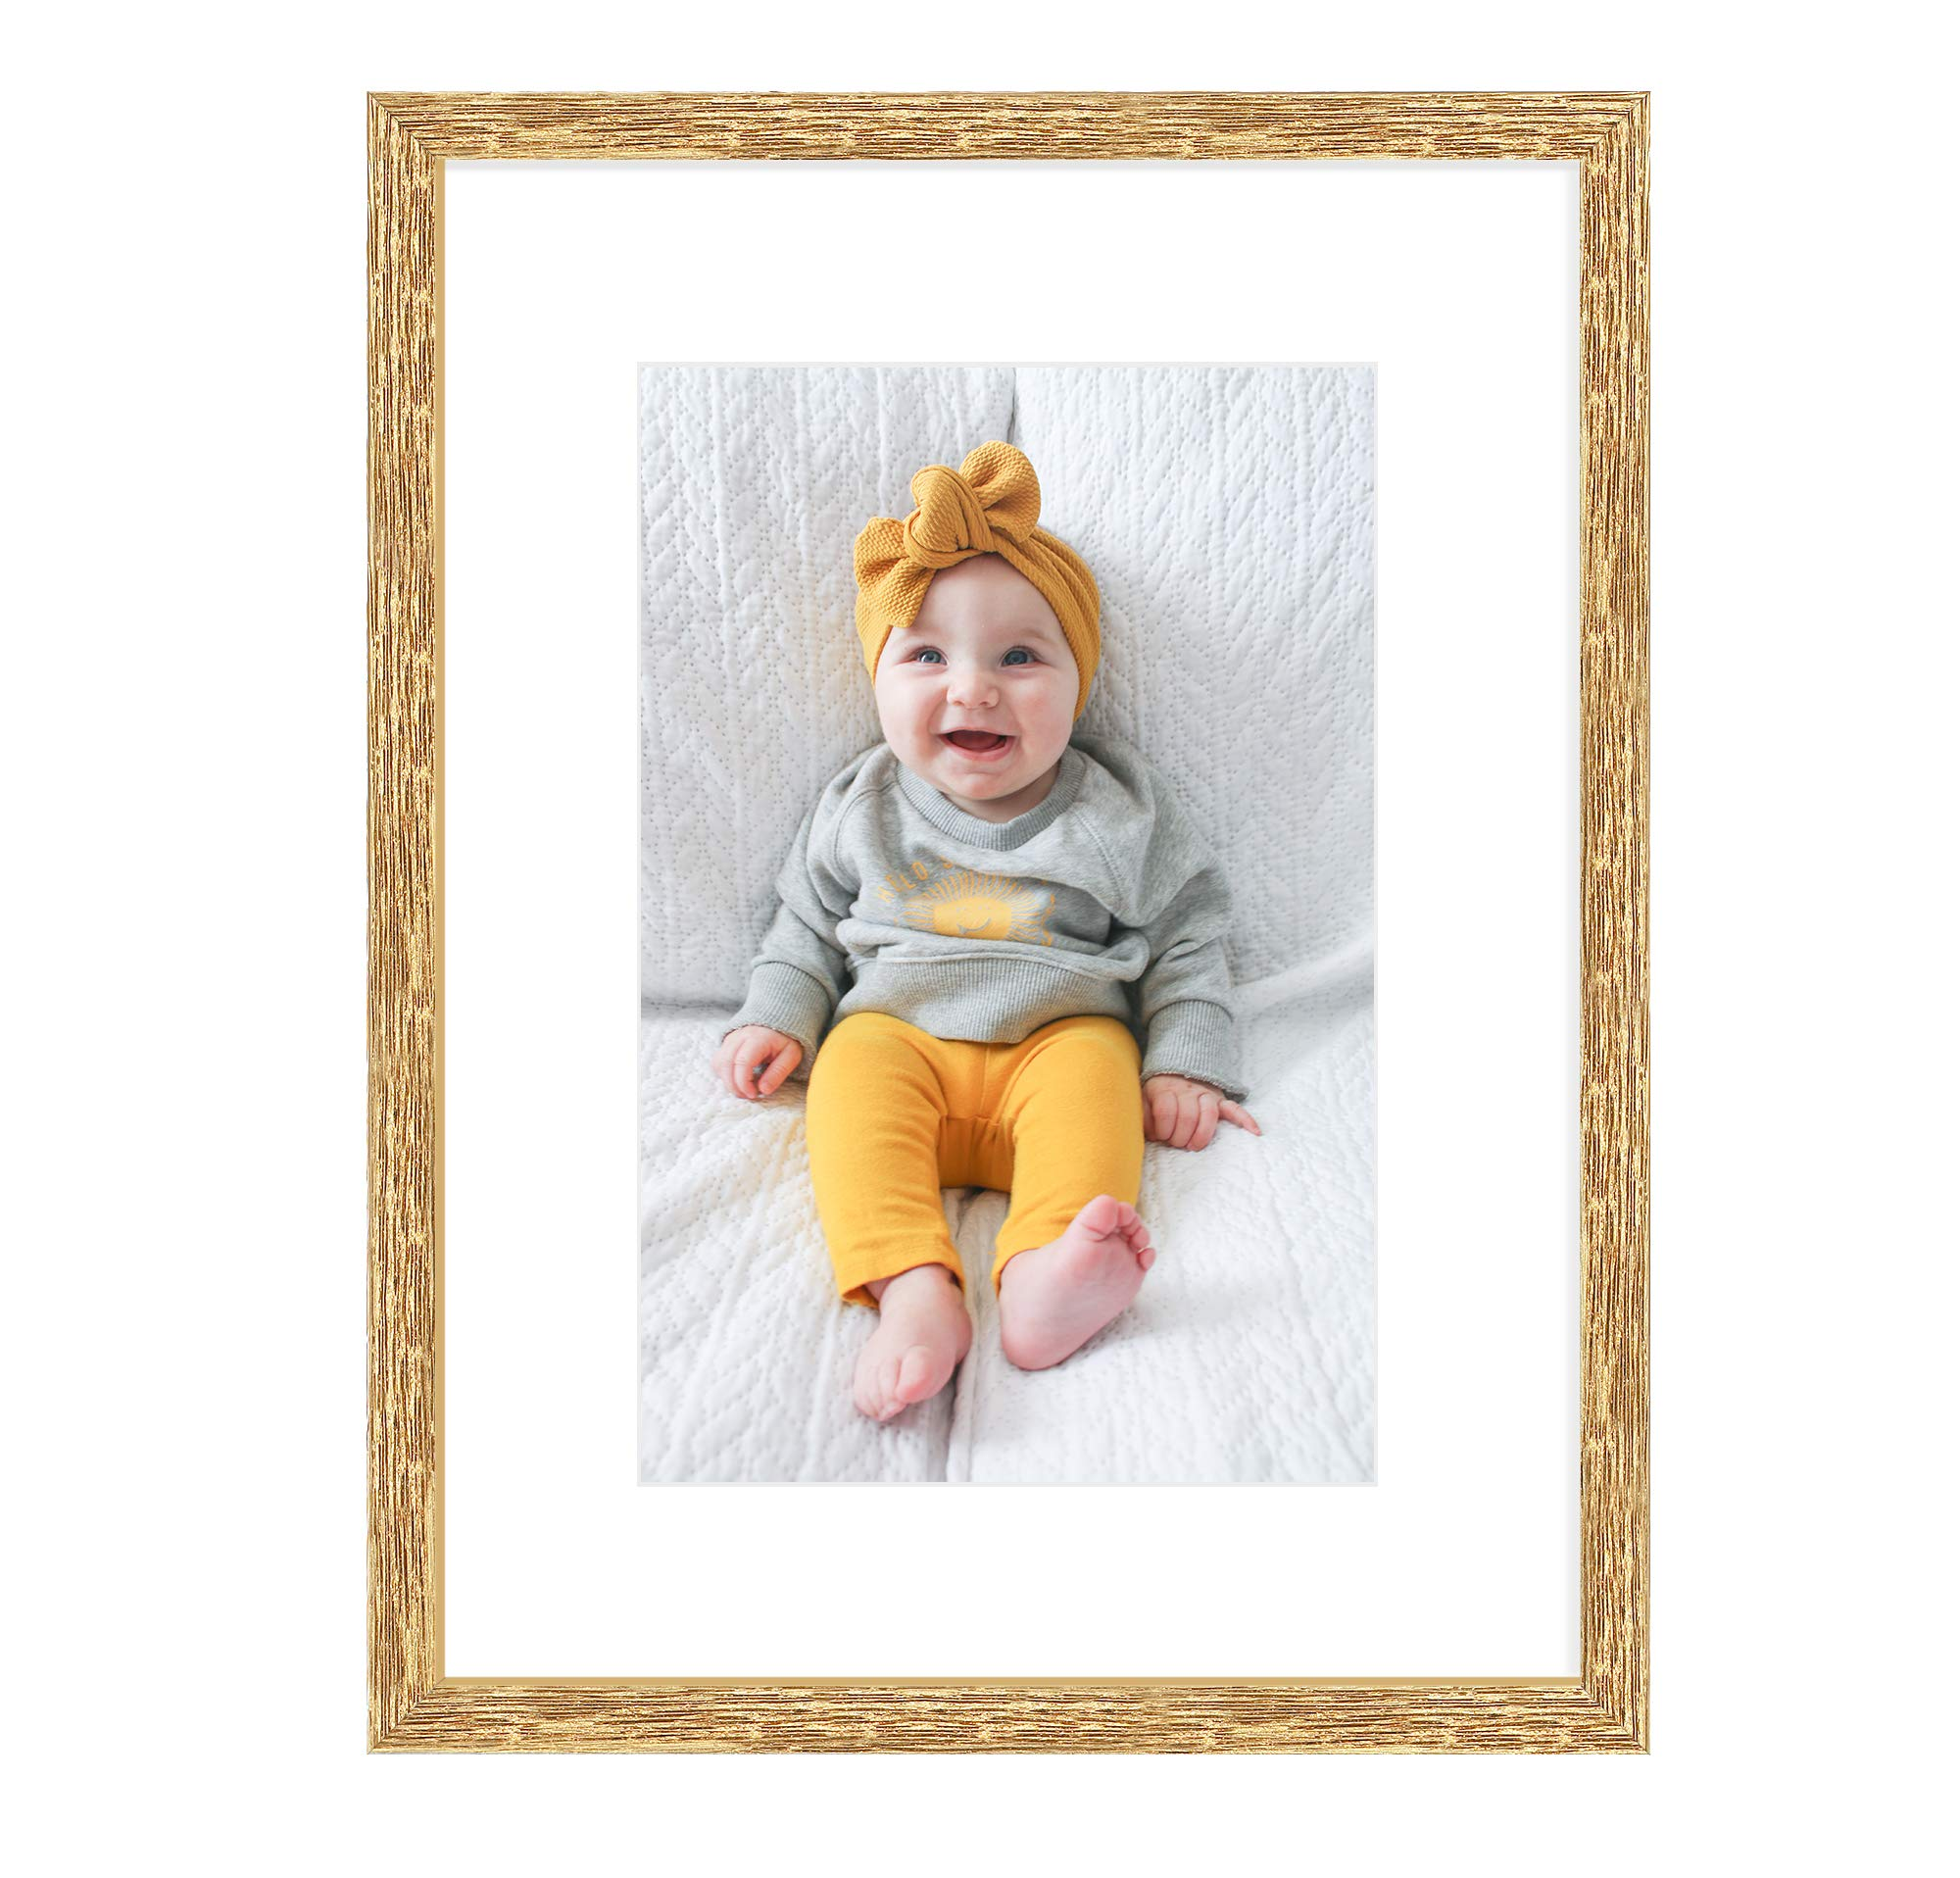 White Mat for 8x12 Pictures ... Golden State Art 12x16 Silver Trim Black Frame